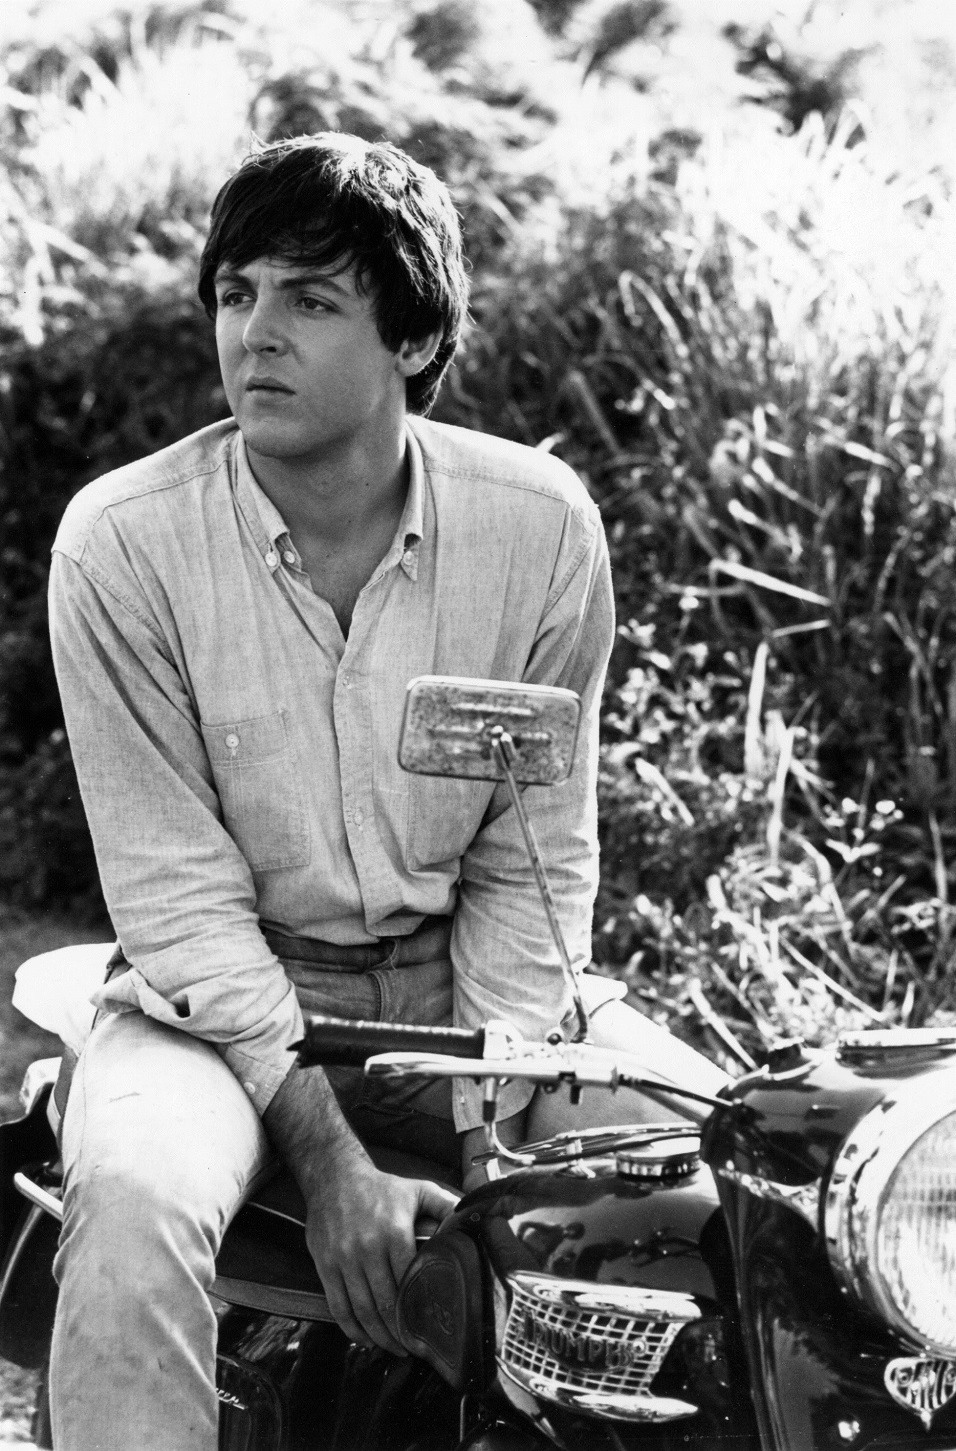 Paul McCartney of The Beatles sitting astride his motor bike, 1965.